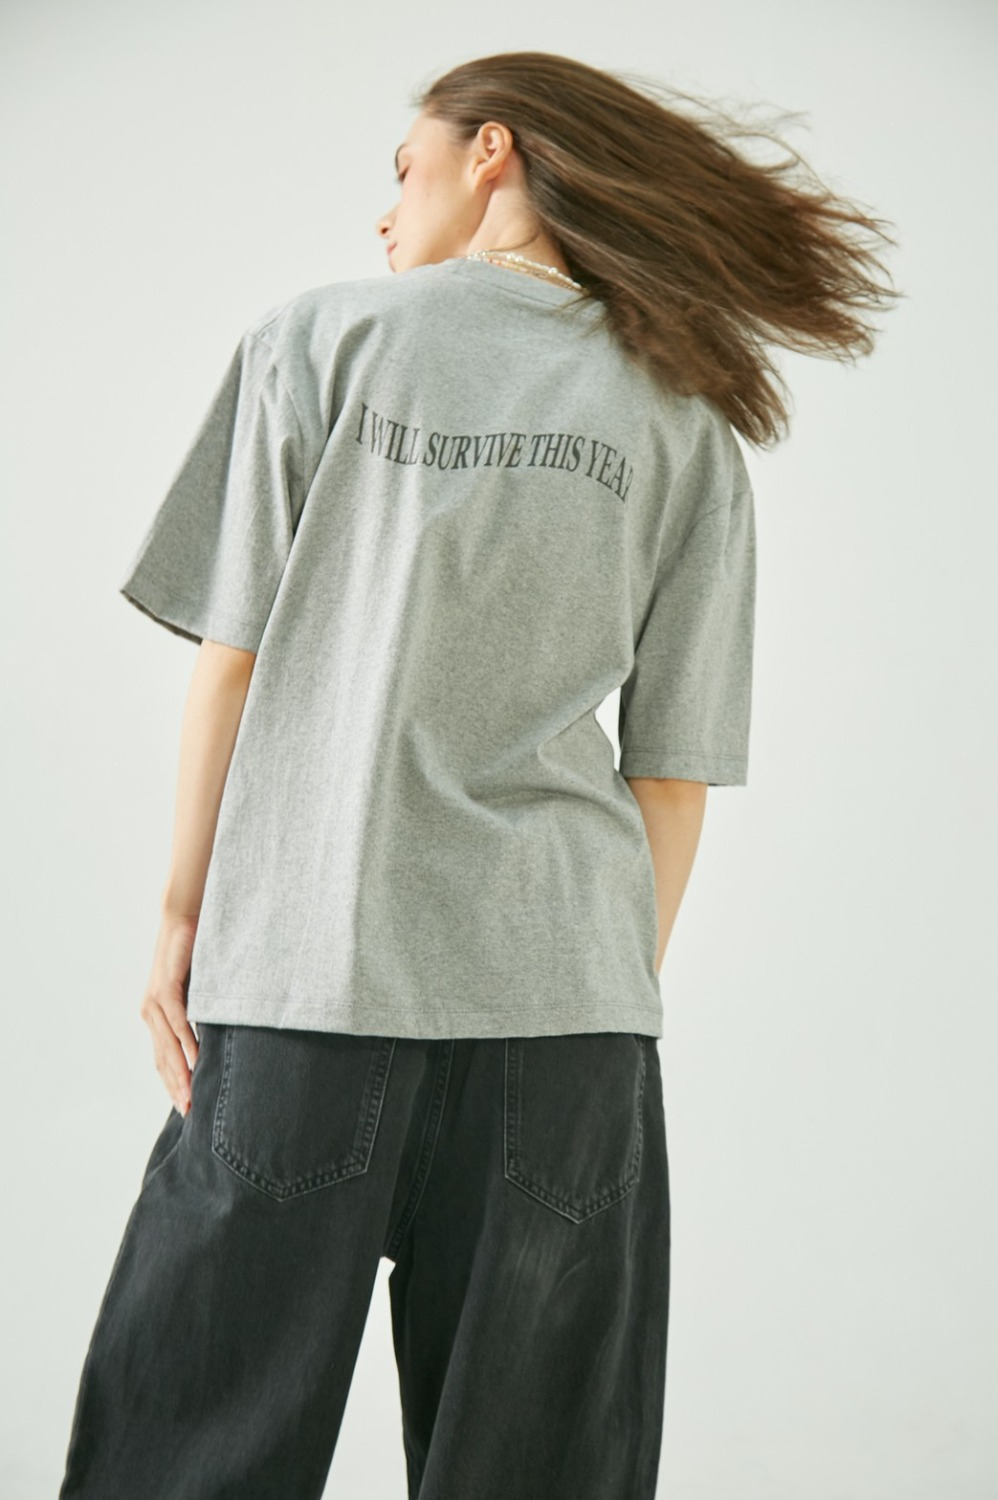 OVERSIZED TEE - I WILL SURVIVE (Grey)